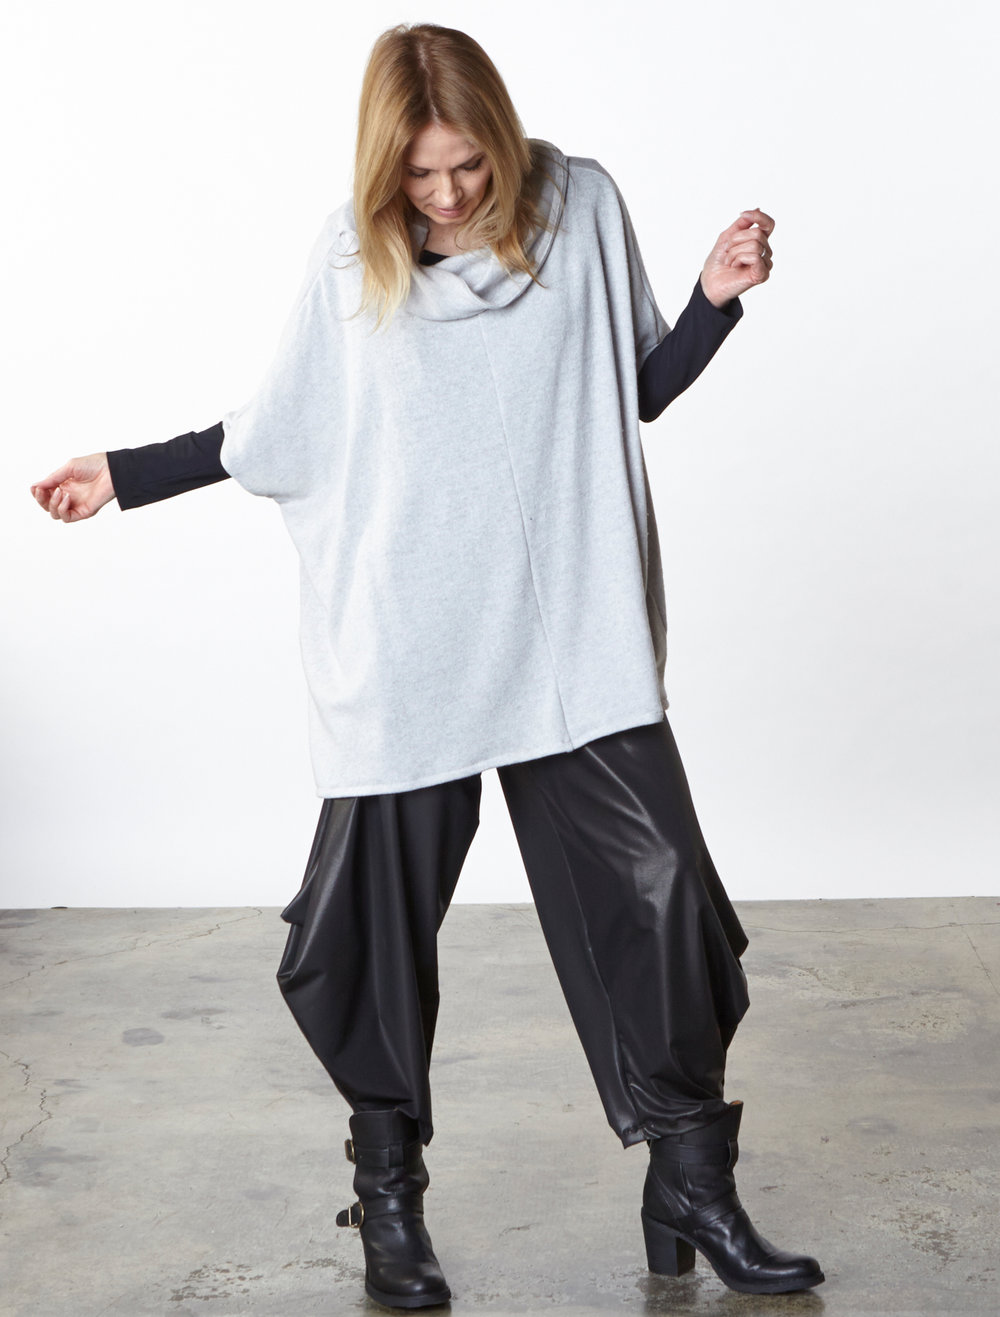 Cowlneck Poncho in Light Grey Italian Wool, Hamish Pant in Black Italian Laminato